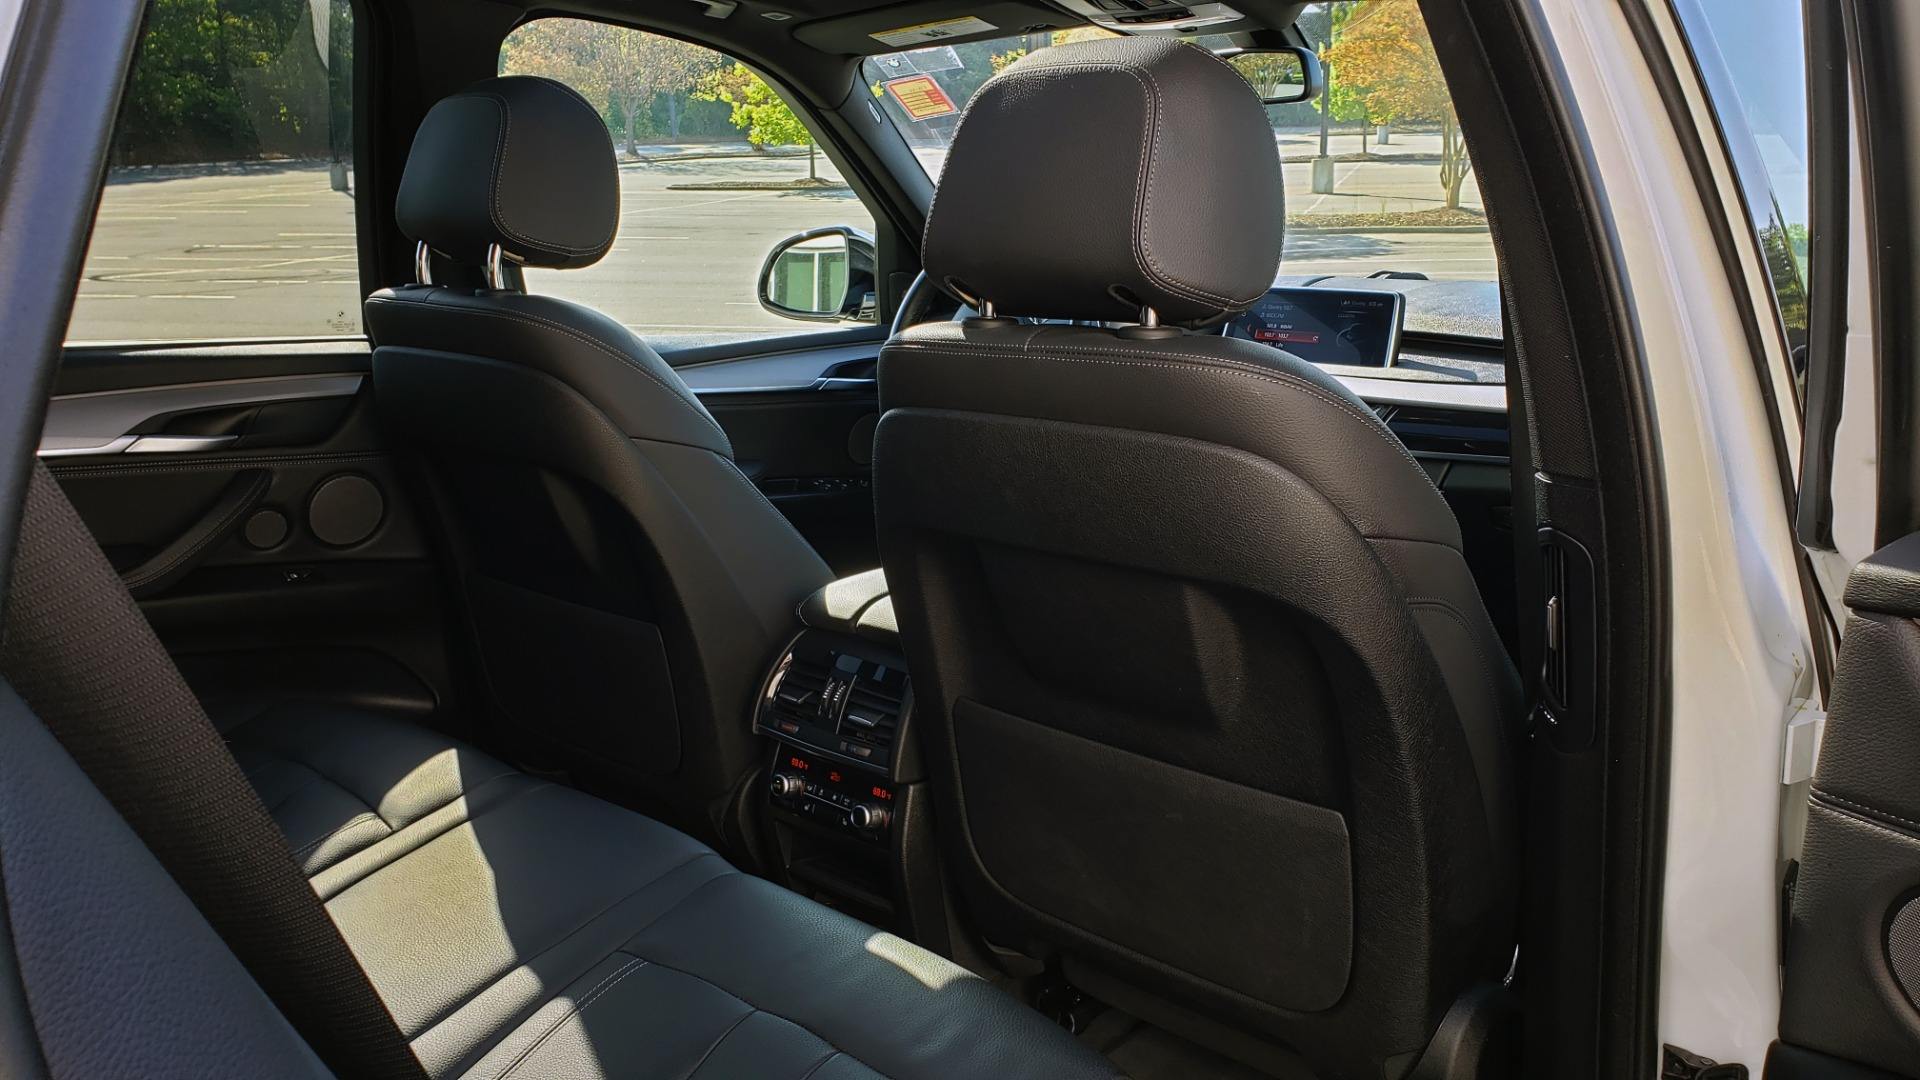 Used 2018 BMW X5 XDRIVE35I / M-SPORT / NAV / SUNROOF / H/K SND / REARVIEW for sale Sold at Formula Imports in Charlotte NC 28227 78